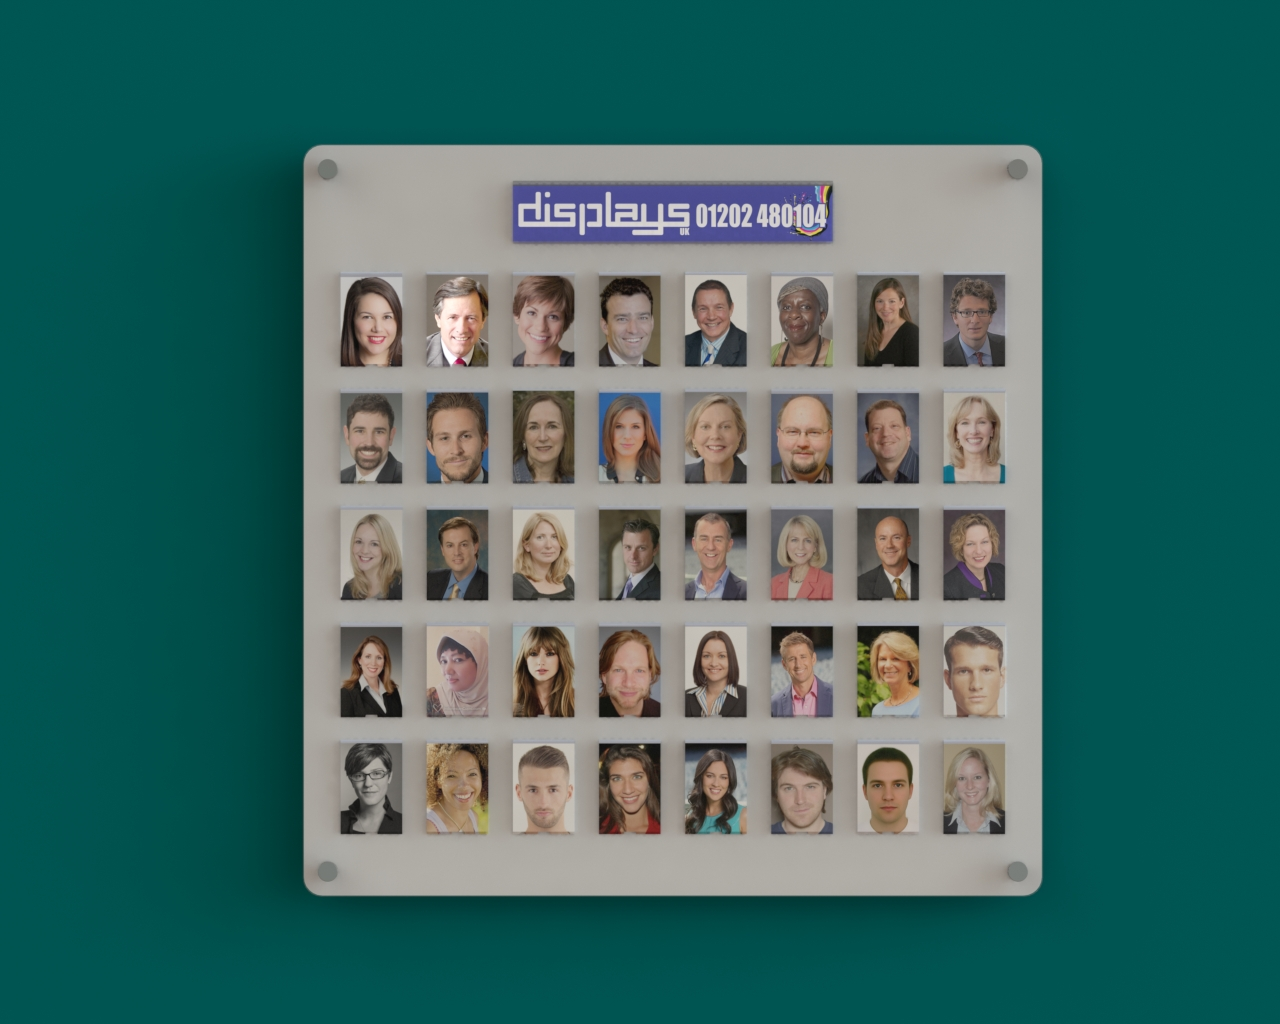 Staff Photo Boards For Schools & Business